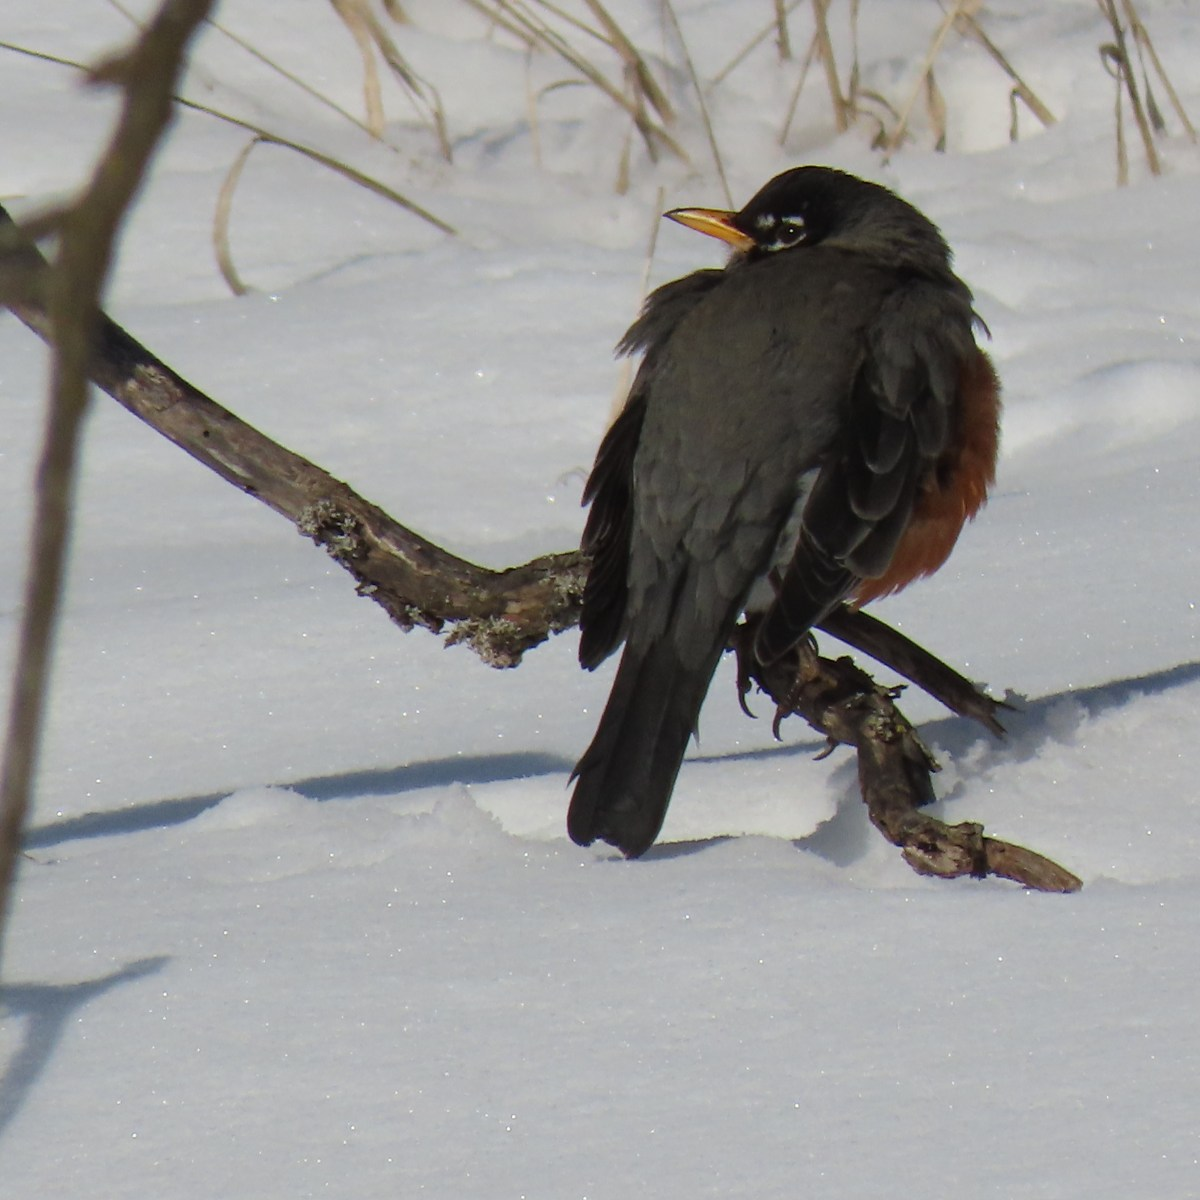 A Robin perched on a low branch just above the snow